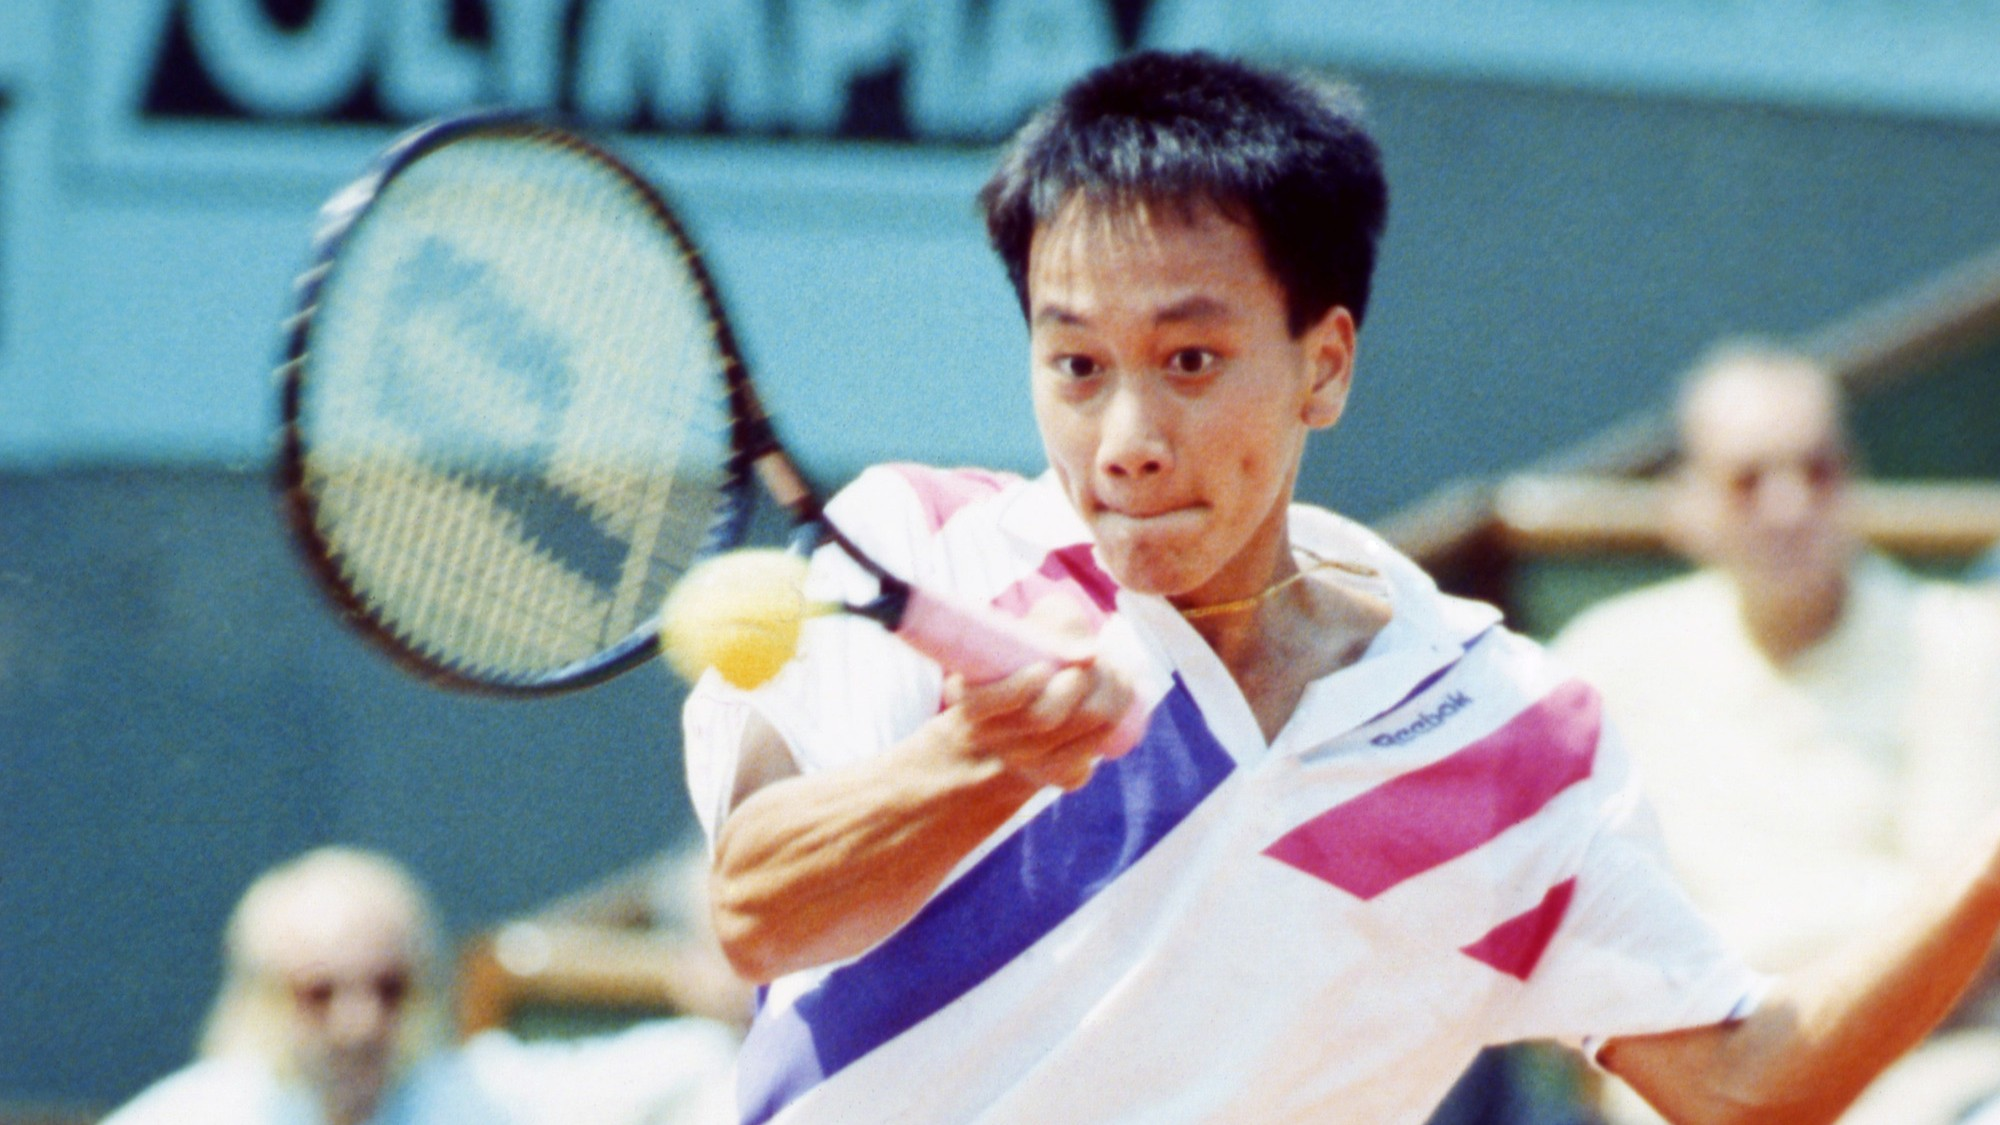 Throwback Thursday 15 Year Old Michael Chang at the U S Open